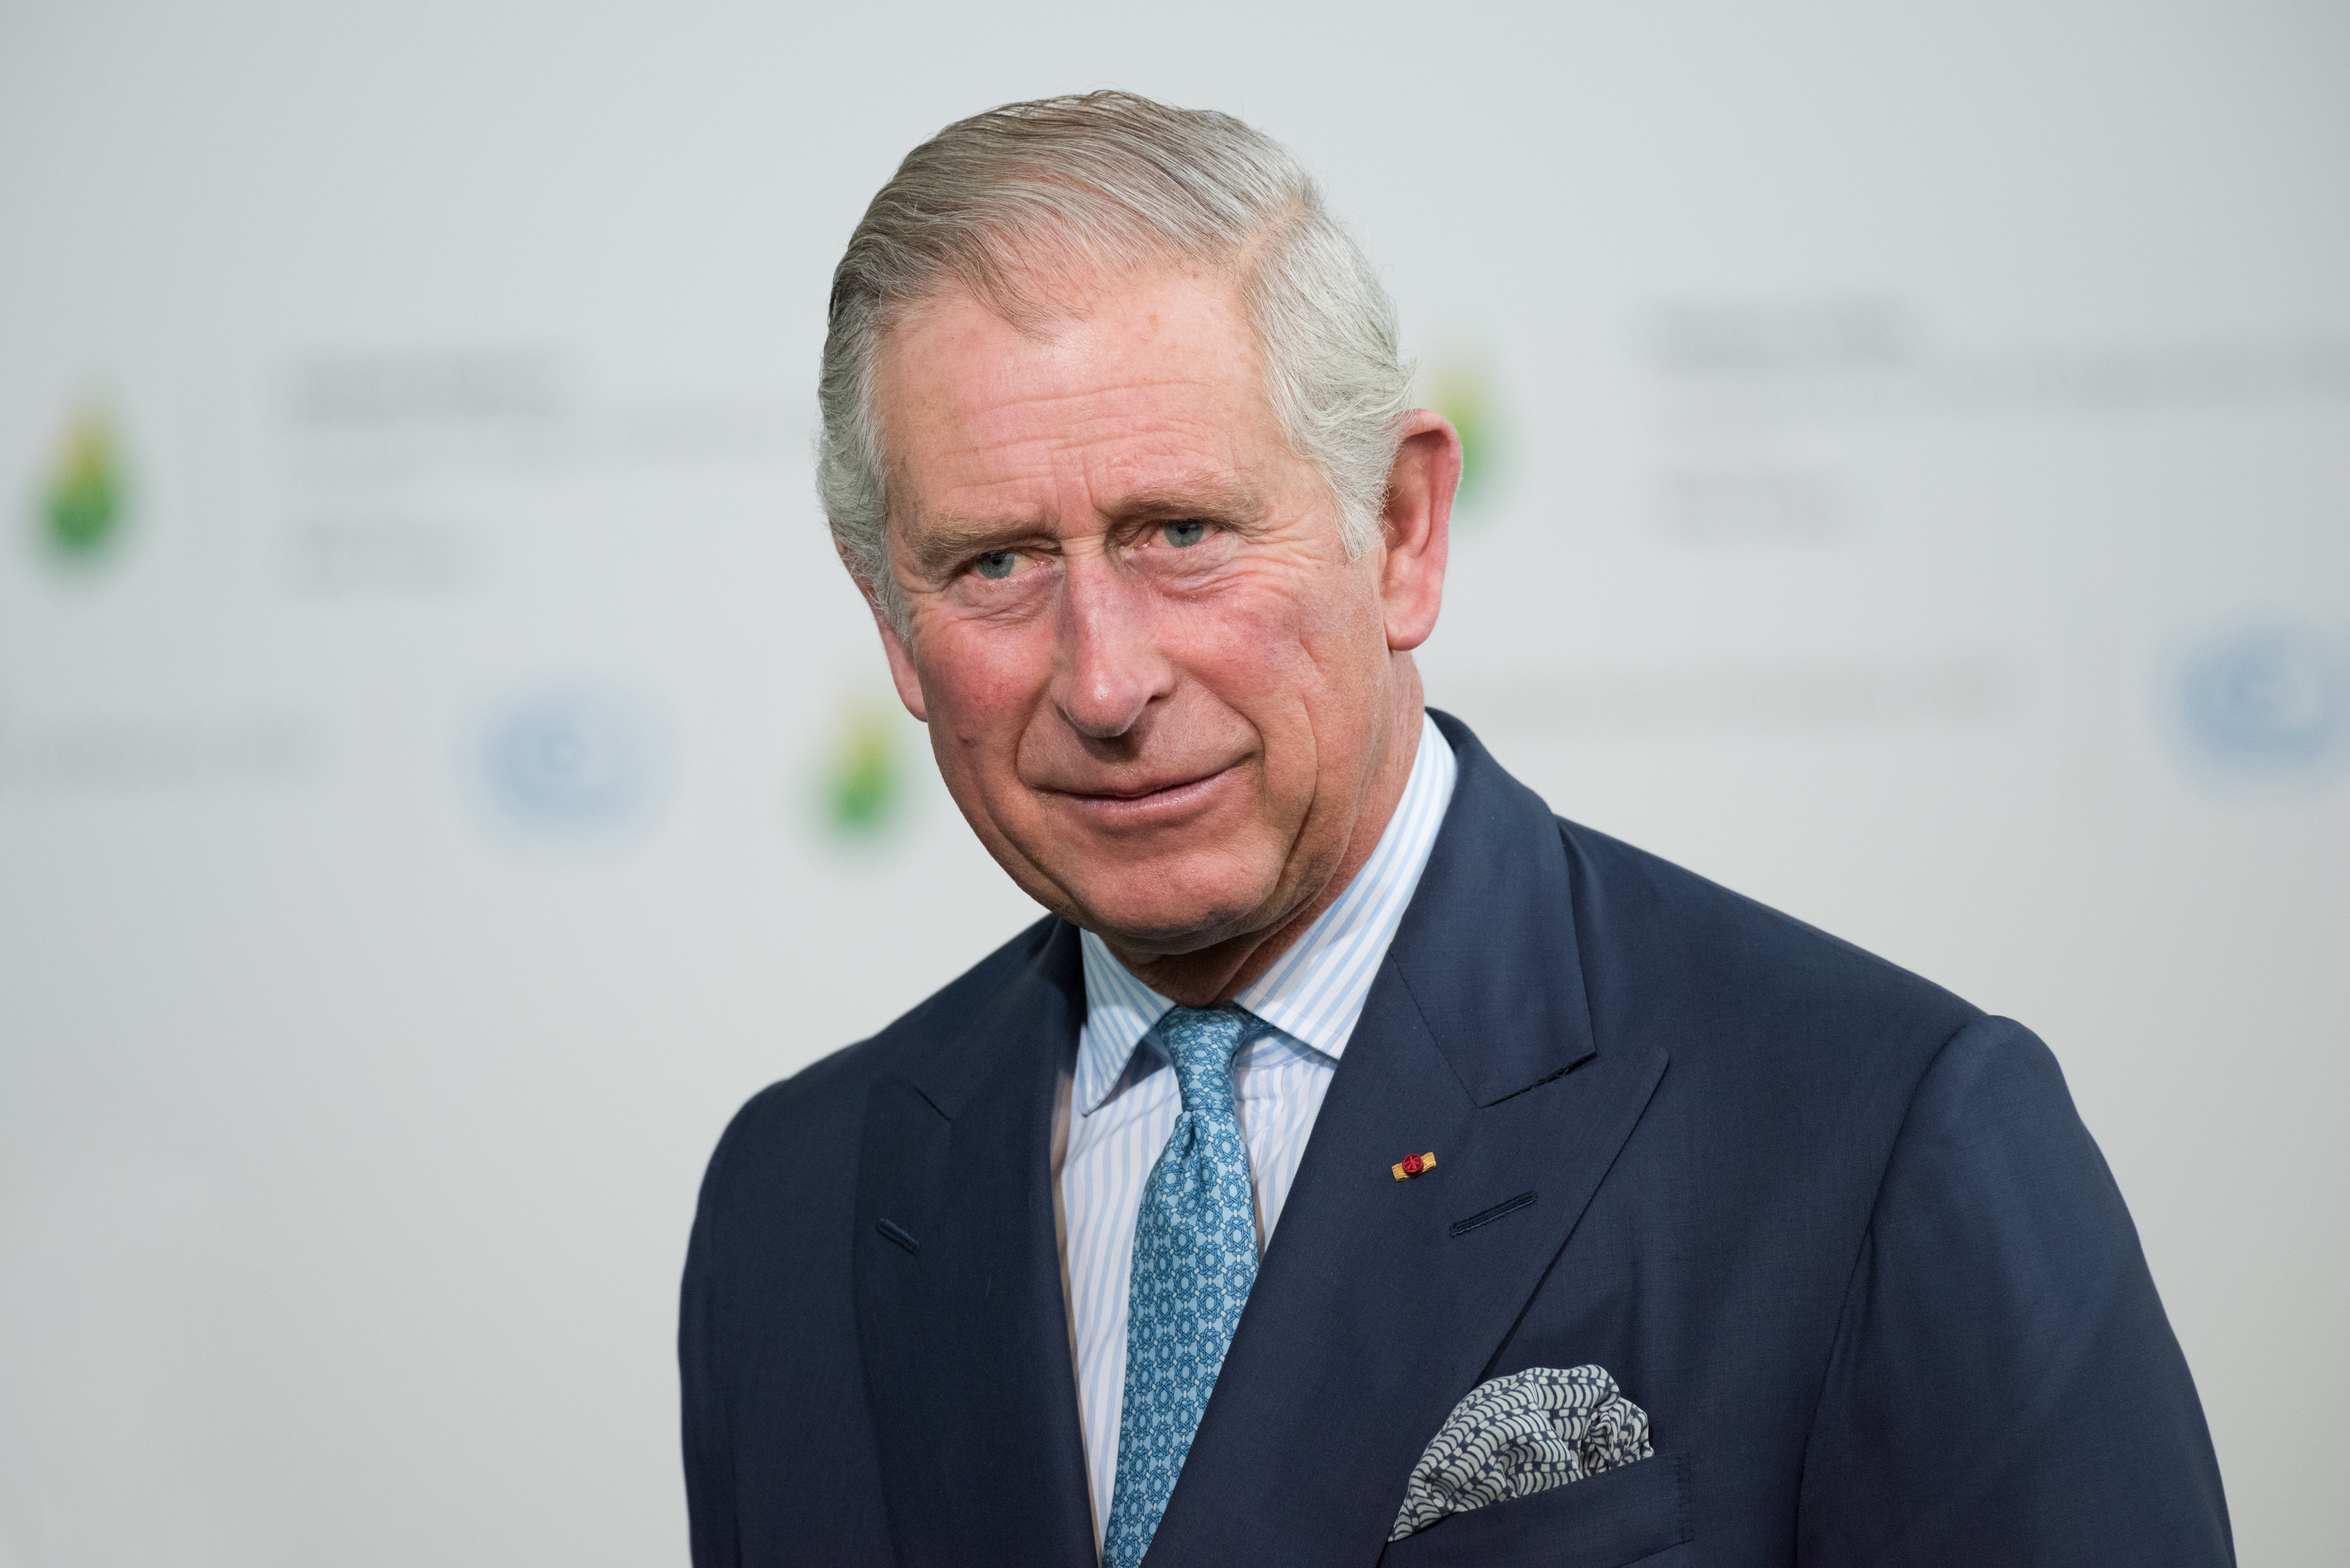 Prince Charles at the Paris COP21, United Nations conference on climate change in November 30, 2015 in Le Bourget, near Paris, France | Photo: Shutterstock